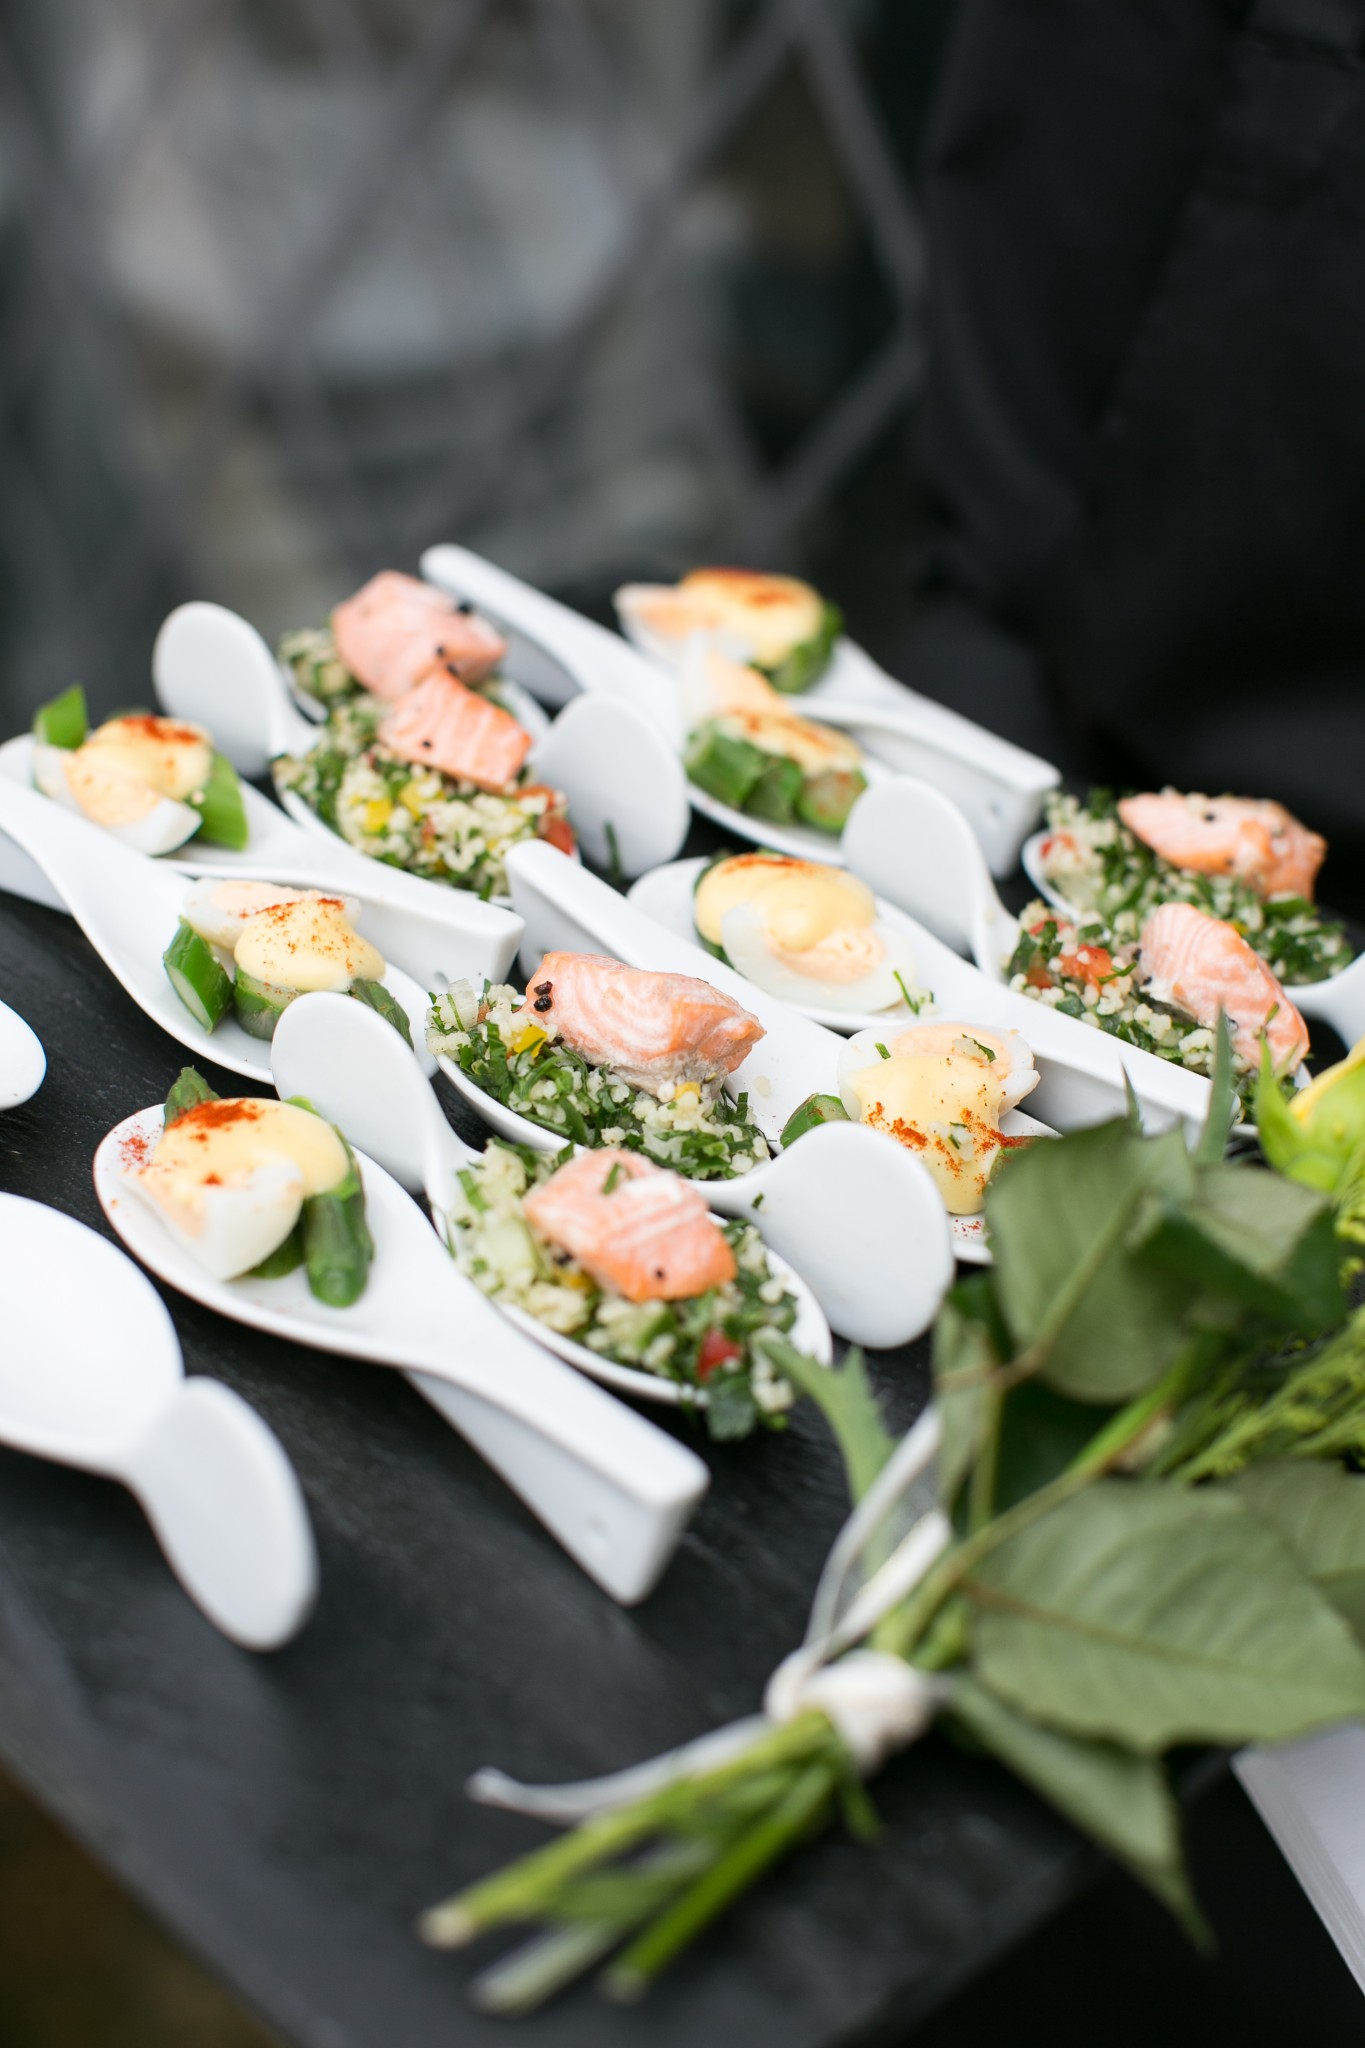 Food gallery catering services be catering for Canape delivery london